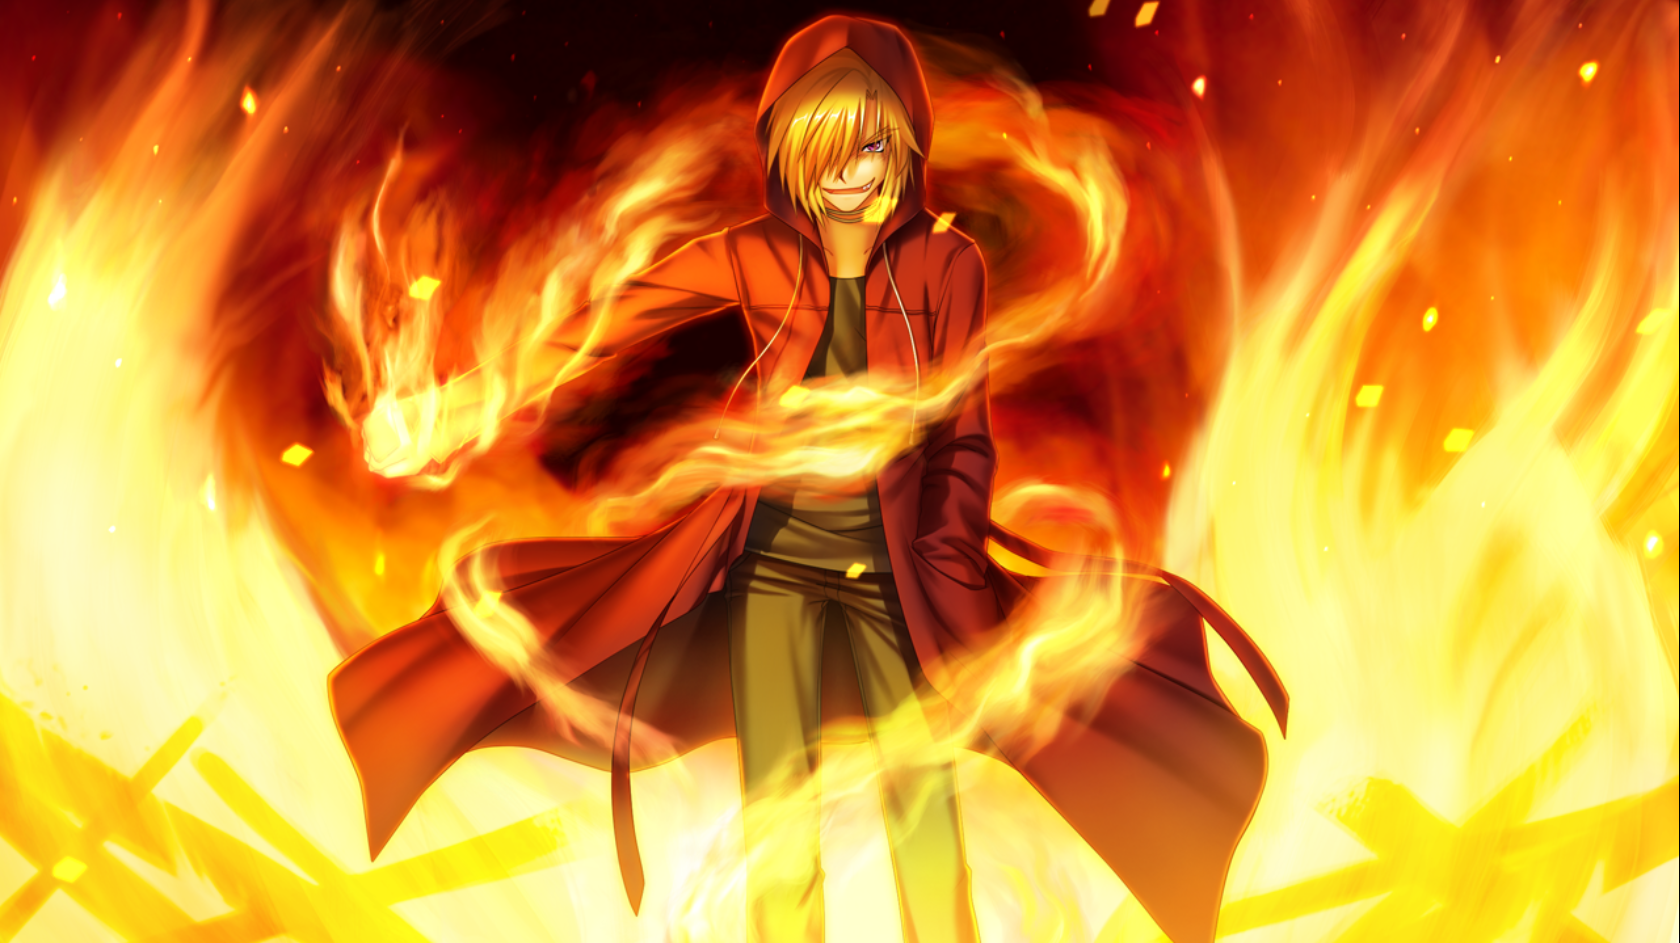 Anime boy hands on fire google search